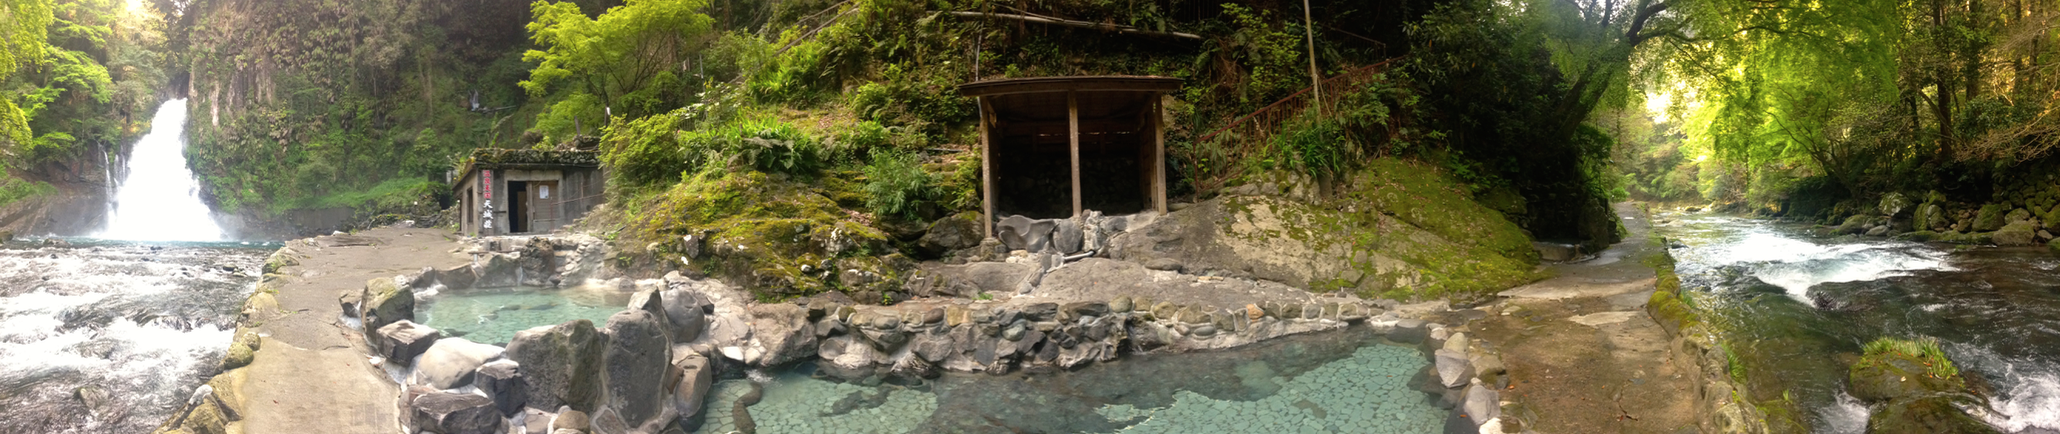 Outdoor onsen with waterfall? YES PLEASE!